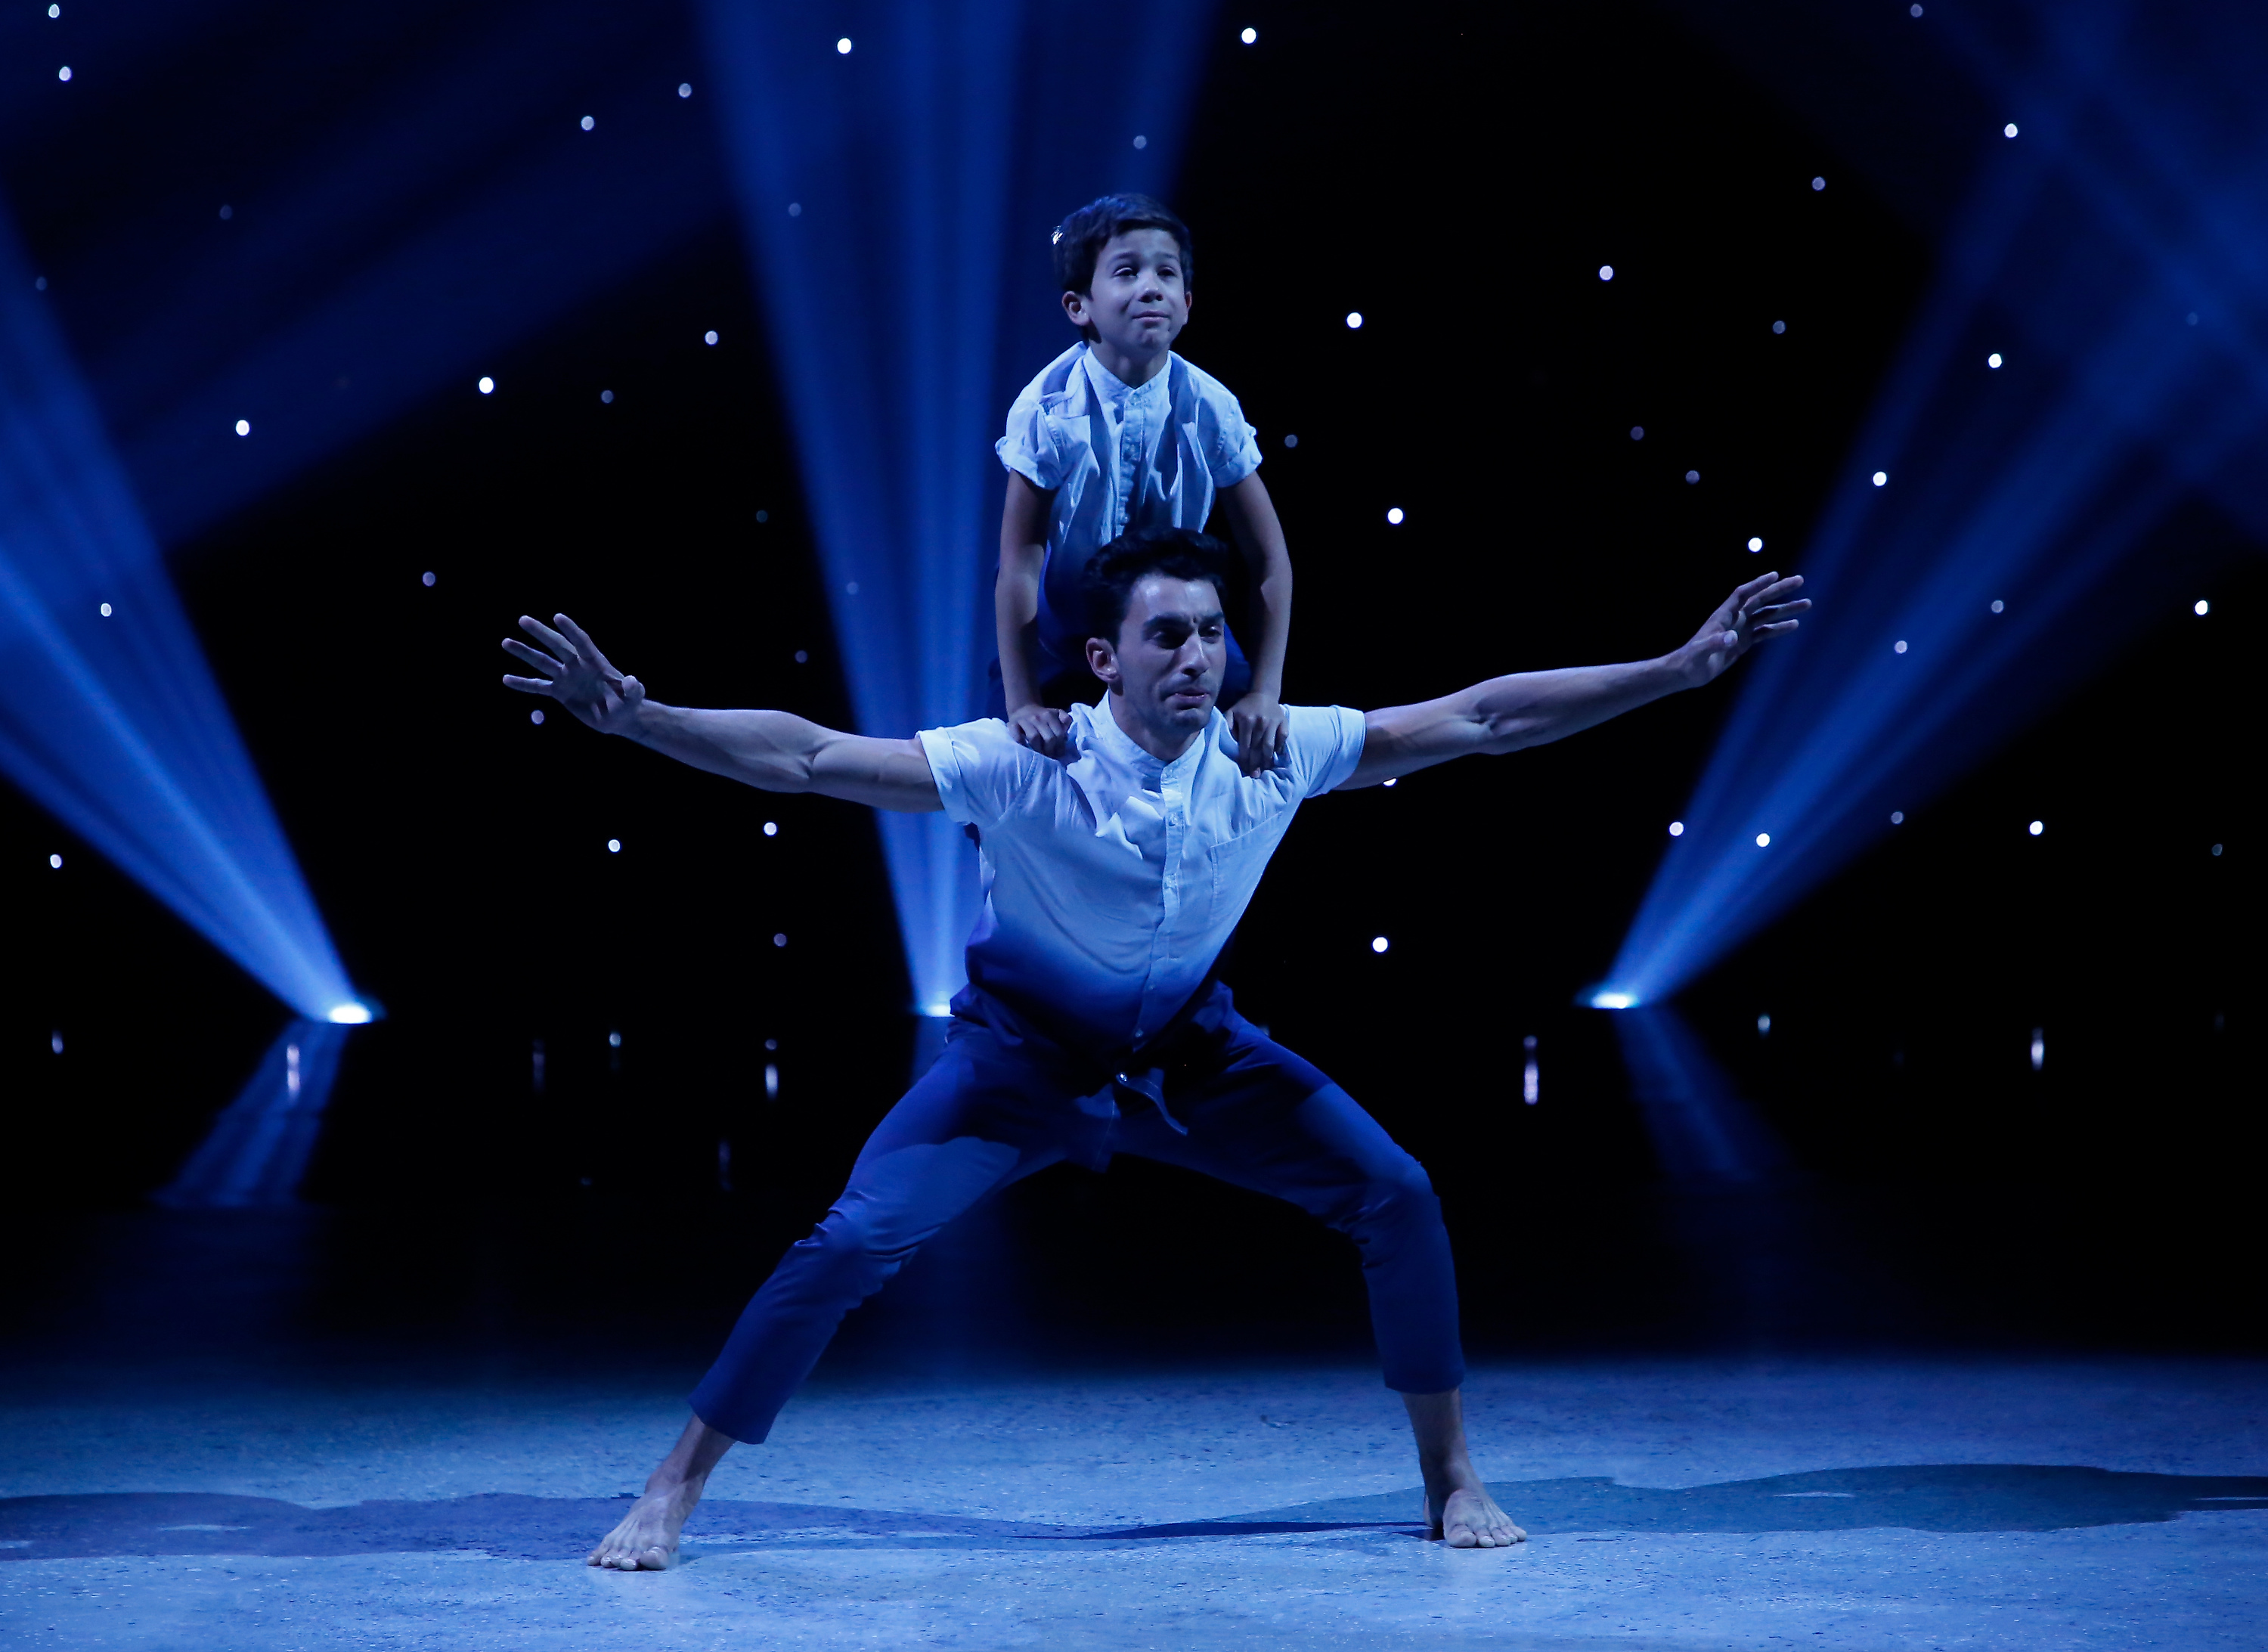 So You Think You Can Dance: Season 14 Renewal Expected for ...